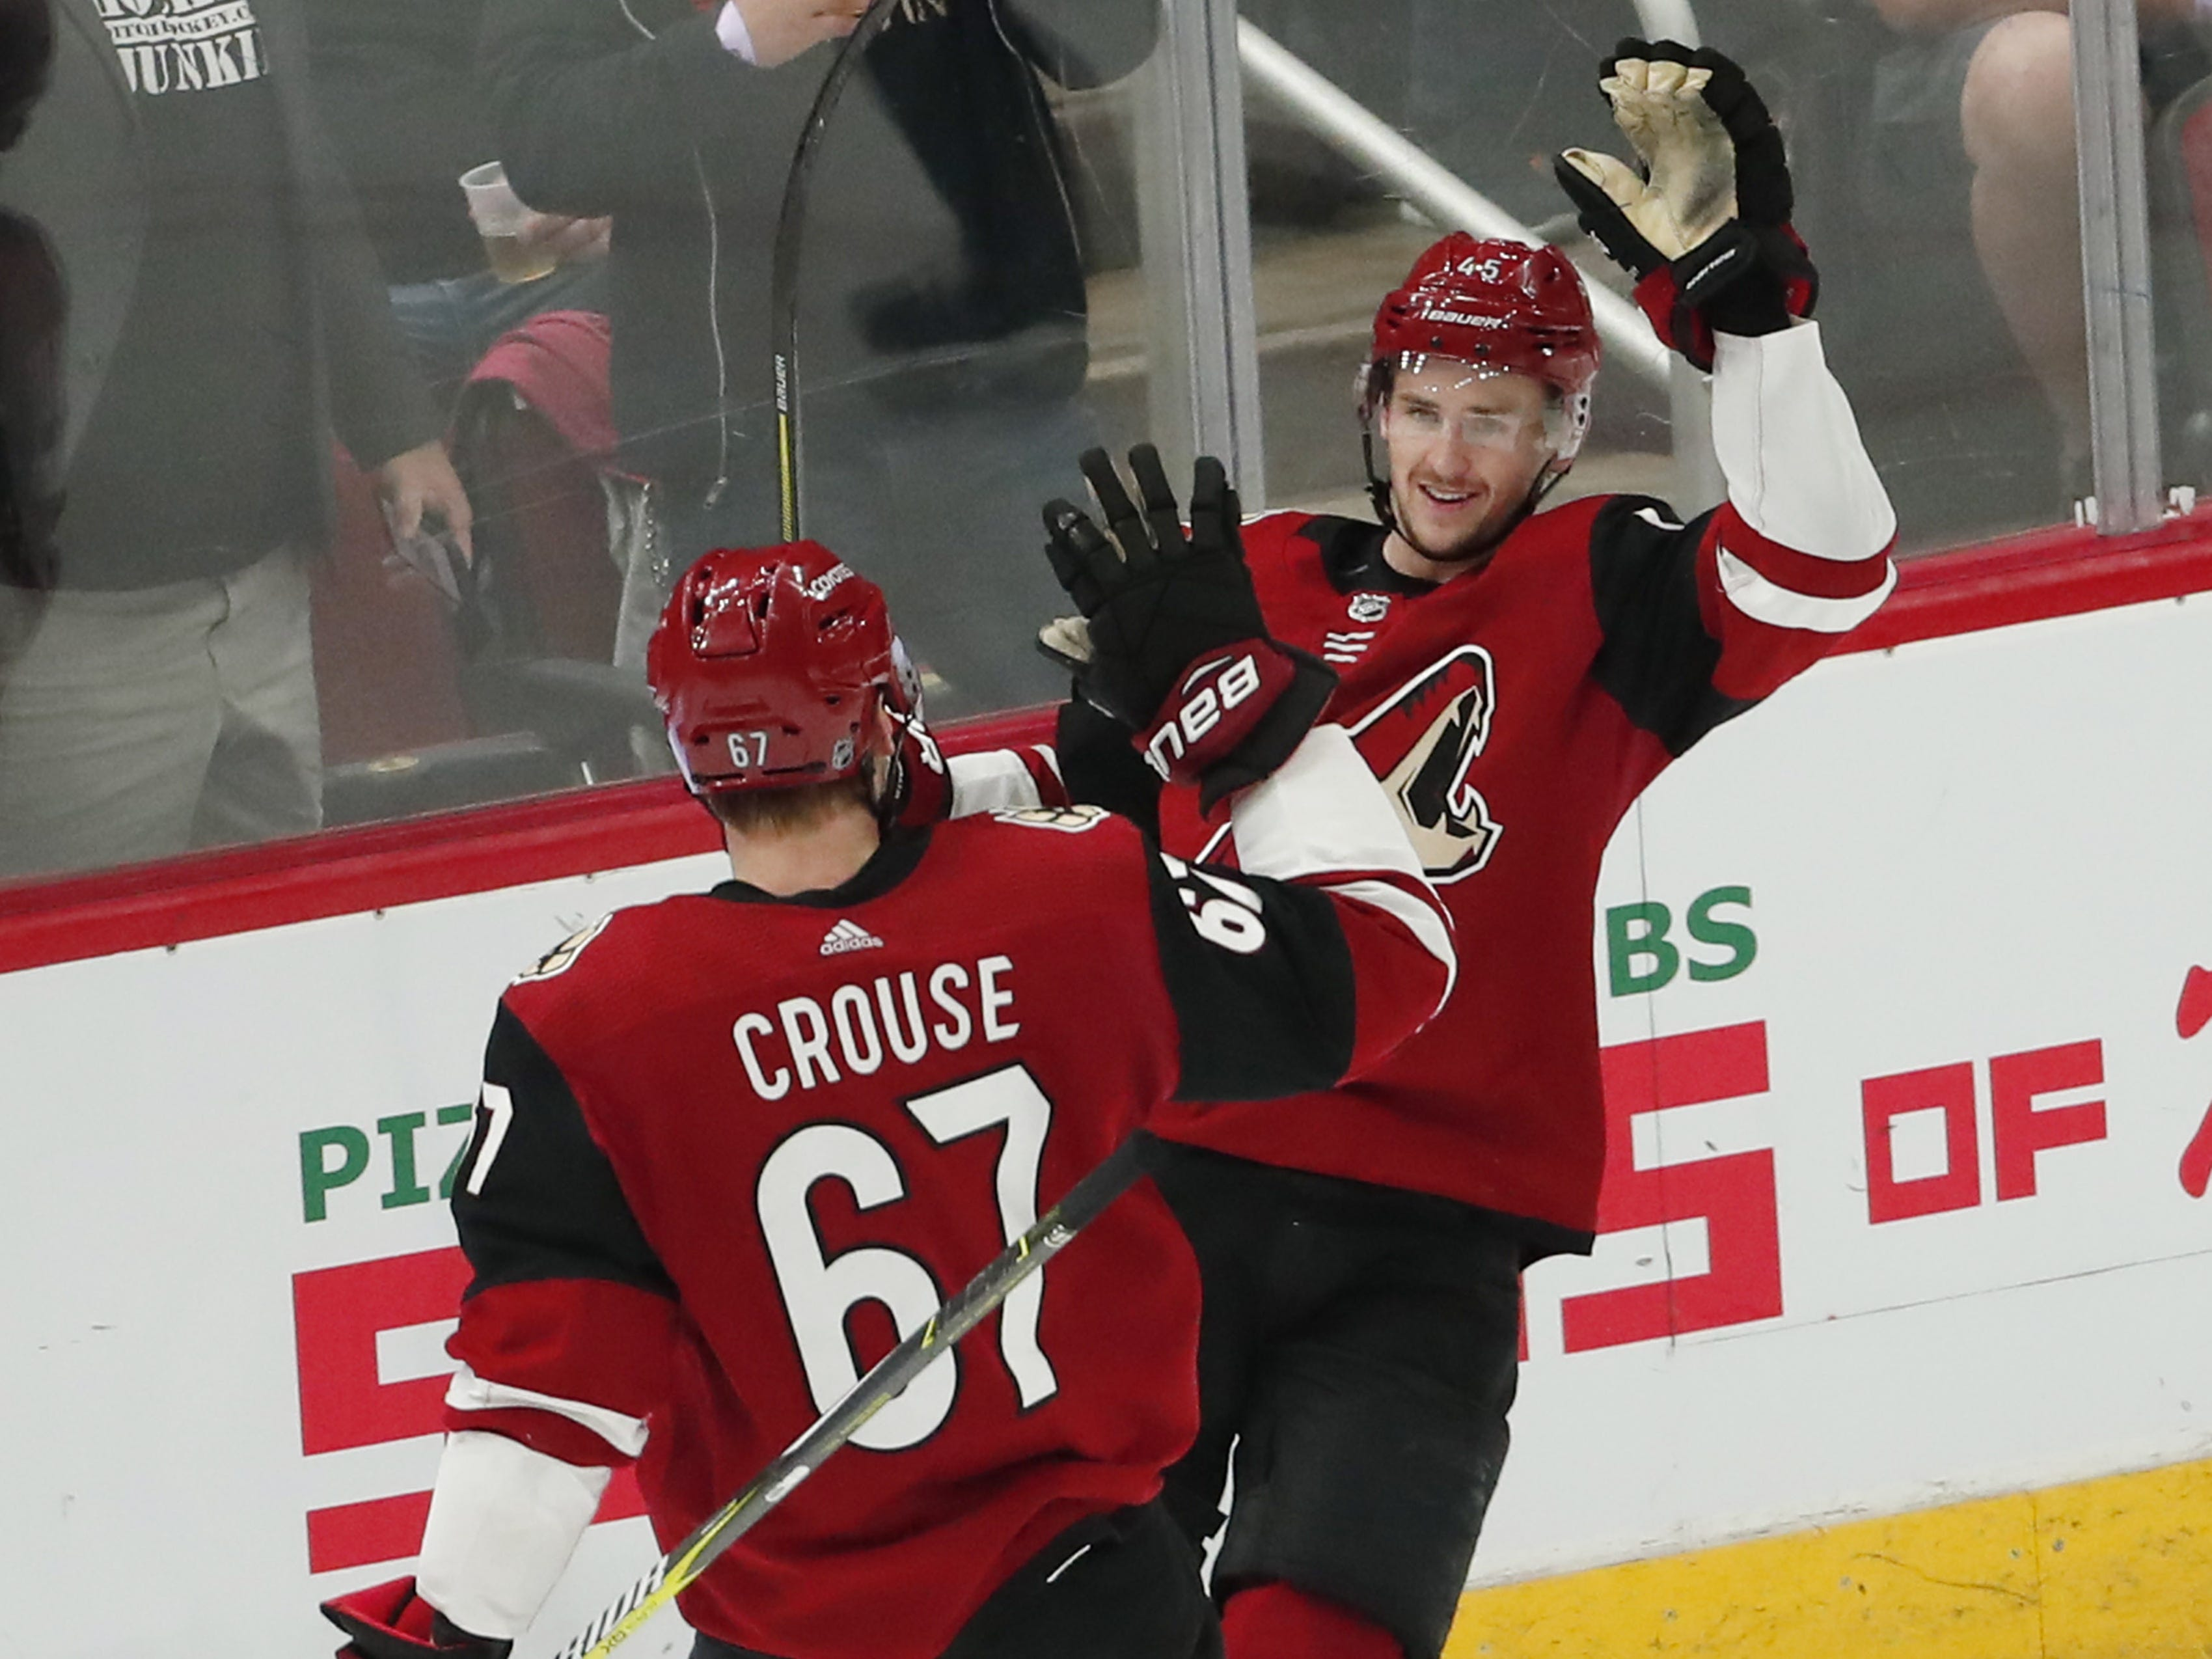 Arizona Coyotes right wing Josh Archibald (45) is congratulated by Arizona Coyotes left wing Lawson Crouse (67) after scoring an empty-net goal against the Minnesota Wild during the third period in Glendale March 31, 2019.